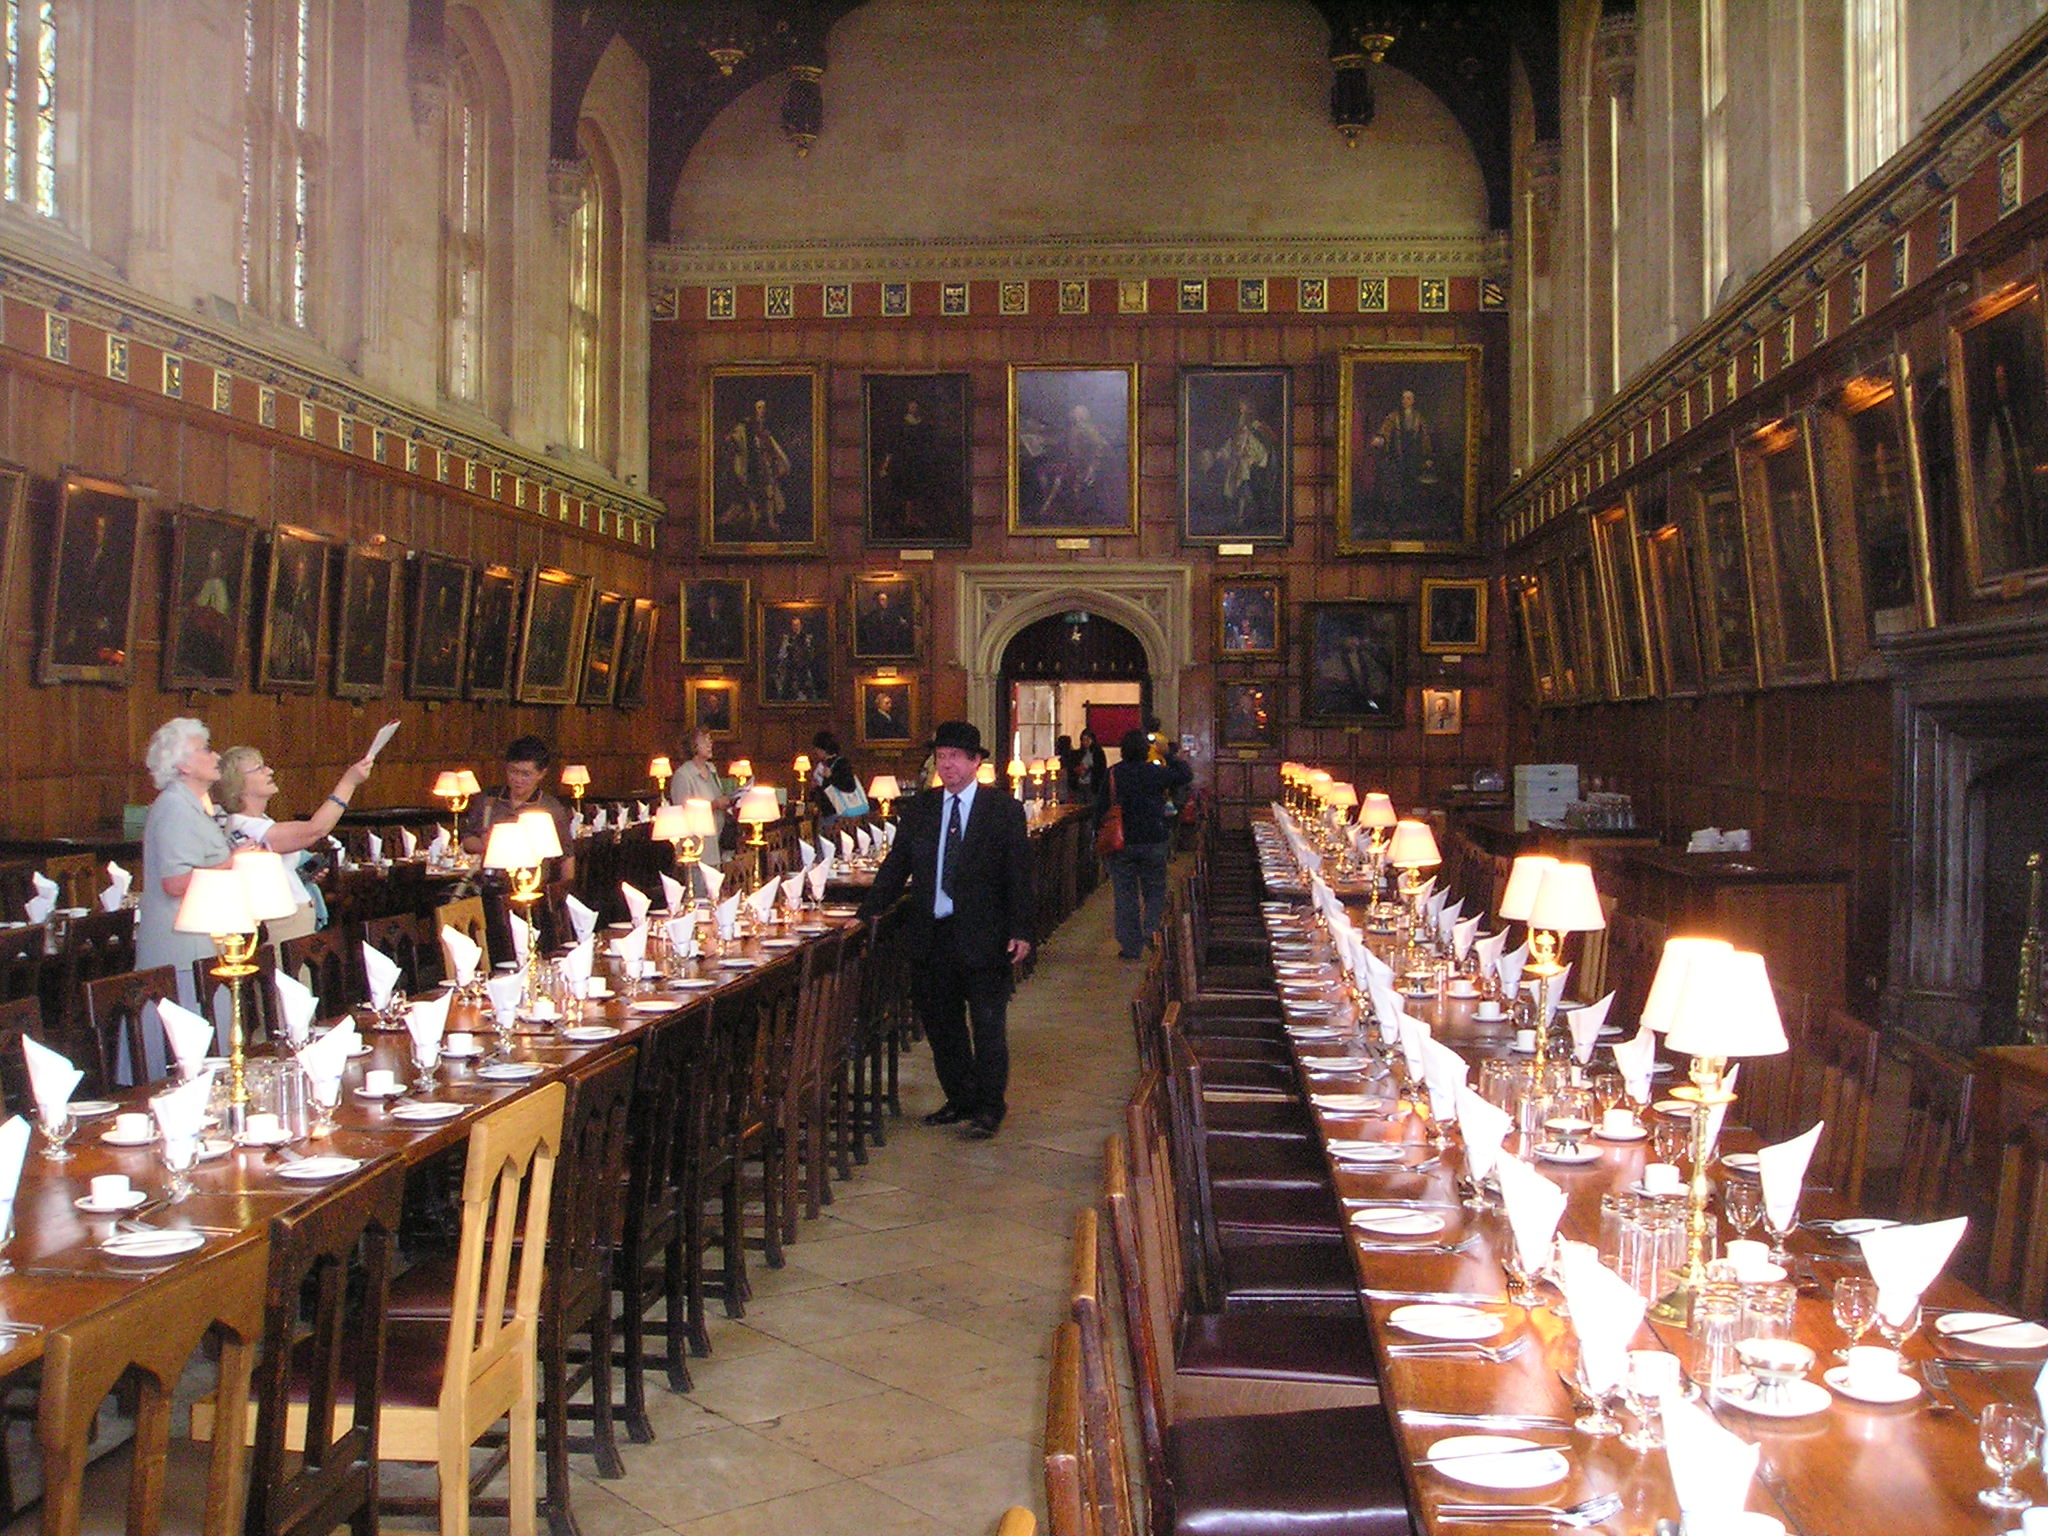 Hall at Christ Church College